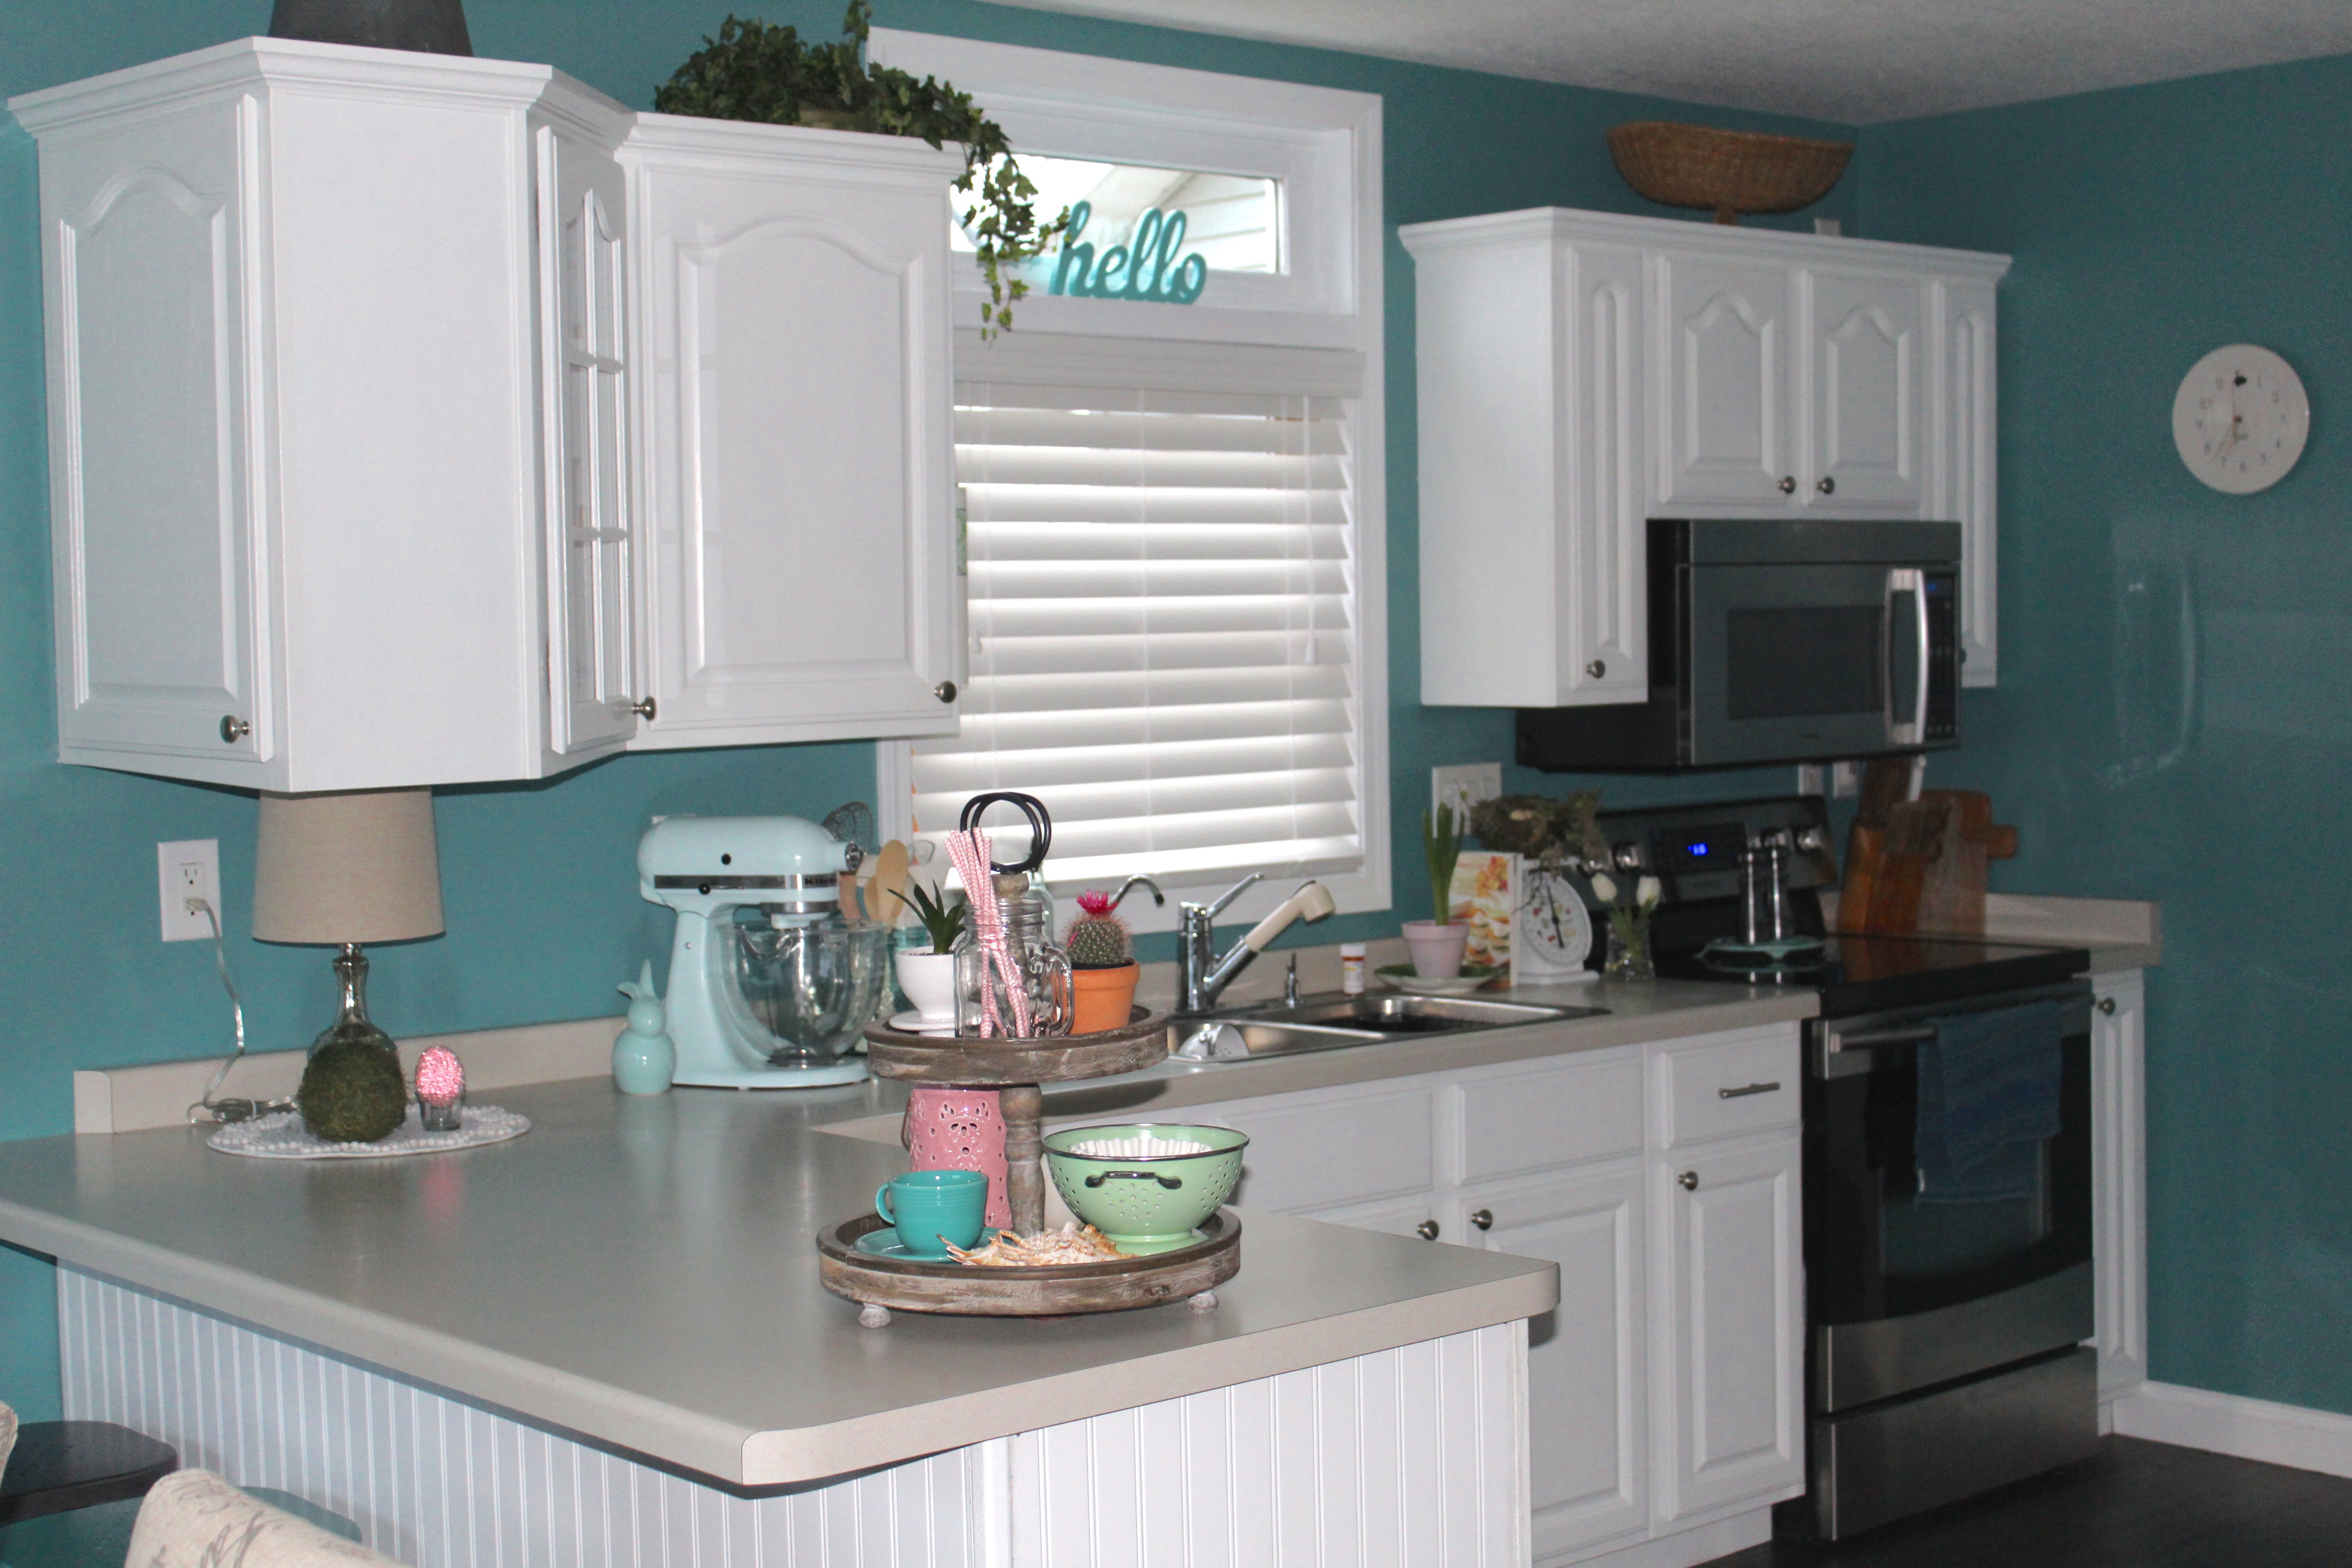 PAINTED THE KITCHEN CABINETS AND NEVER LOOKED BACK!